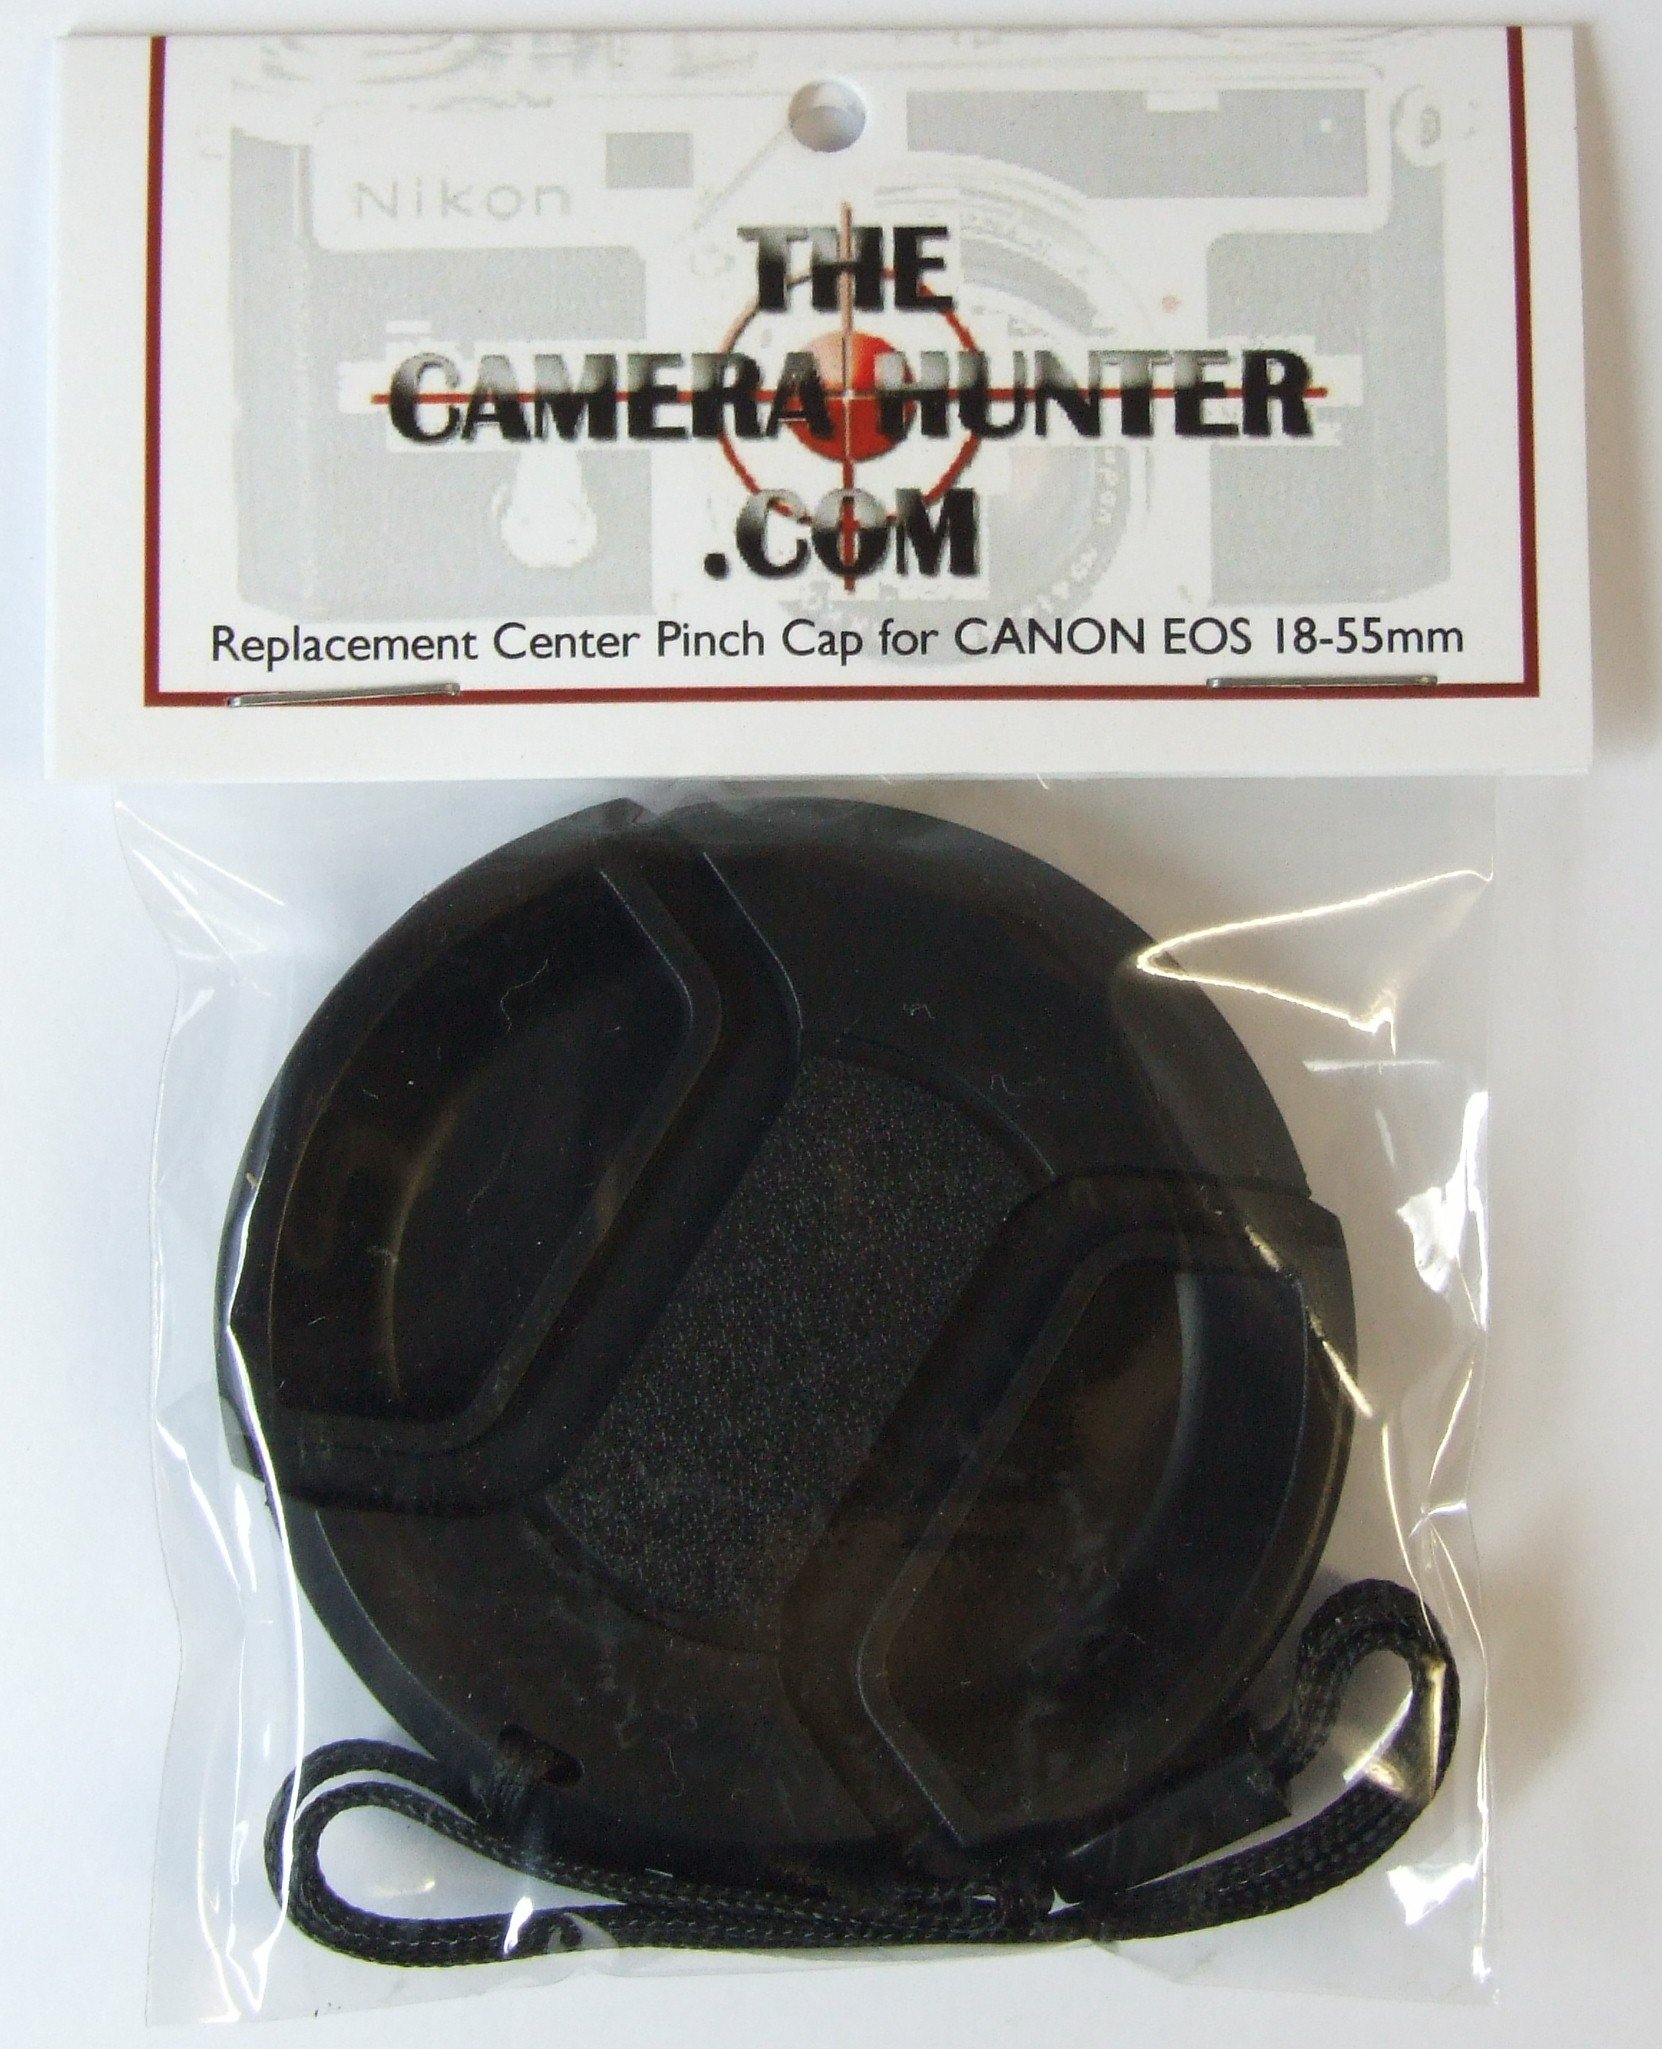 Lens Cap for CANON EOS EF 18-55mm Digital Rebel Camera Lens - Replacement by The Camera Hunter